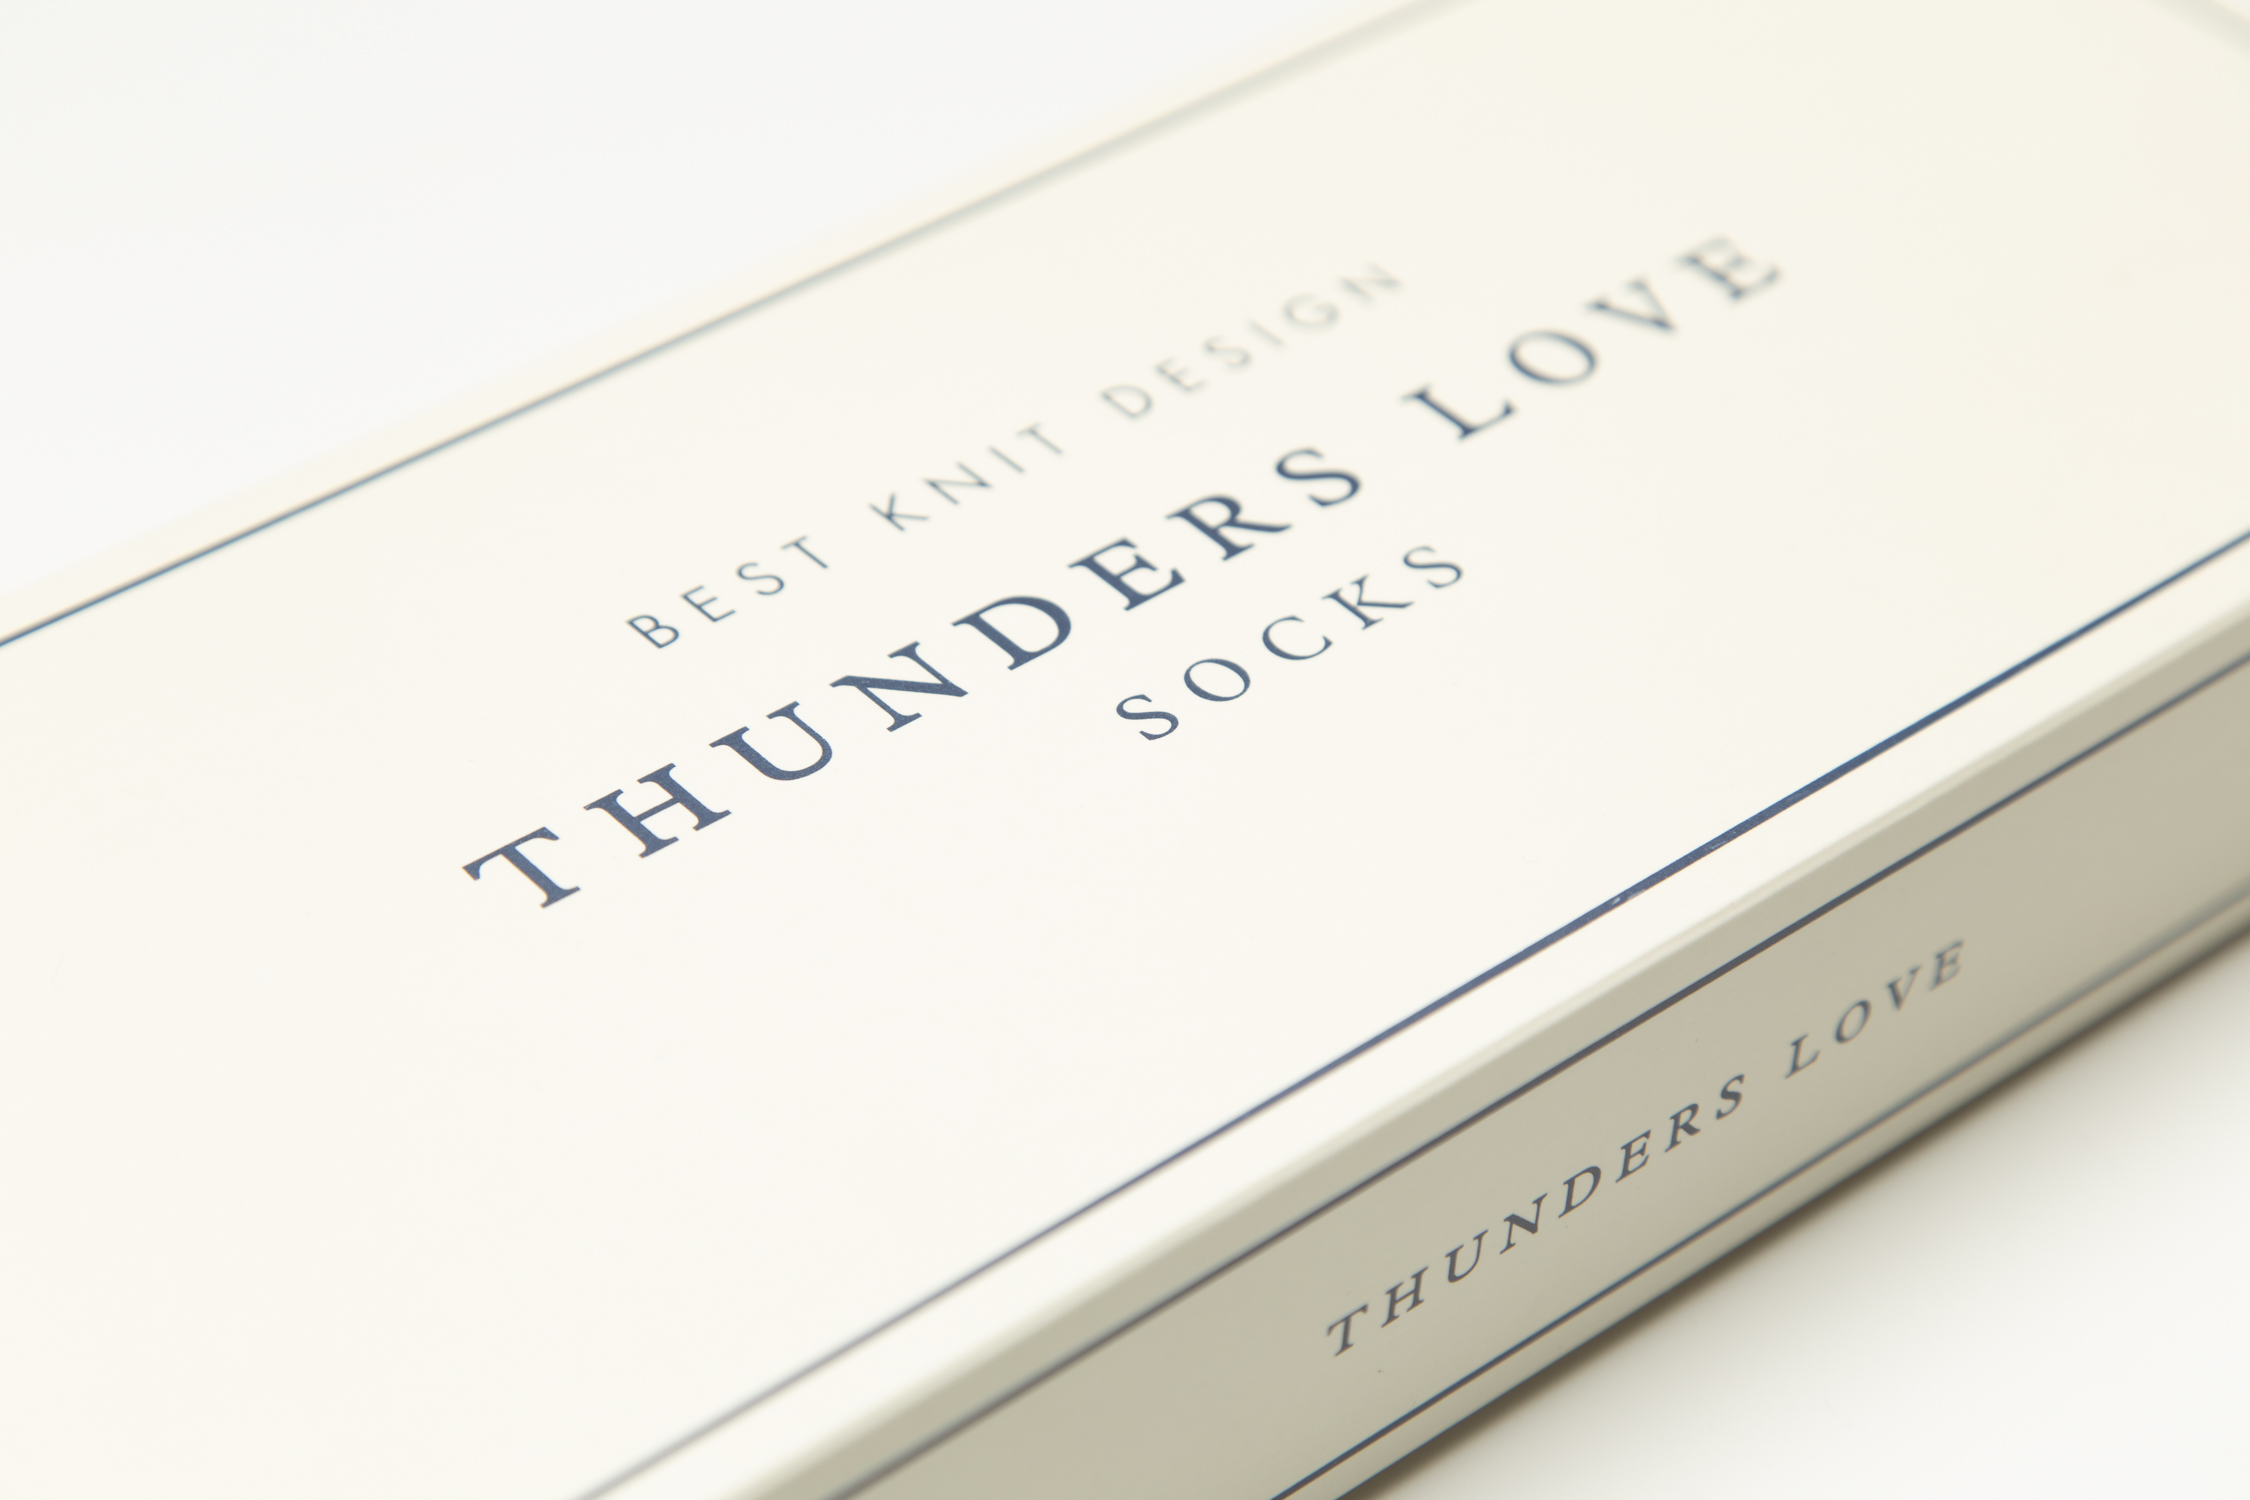 Thunders-Love-Marc-Oortman-3